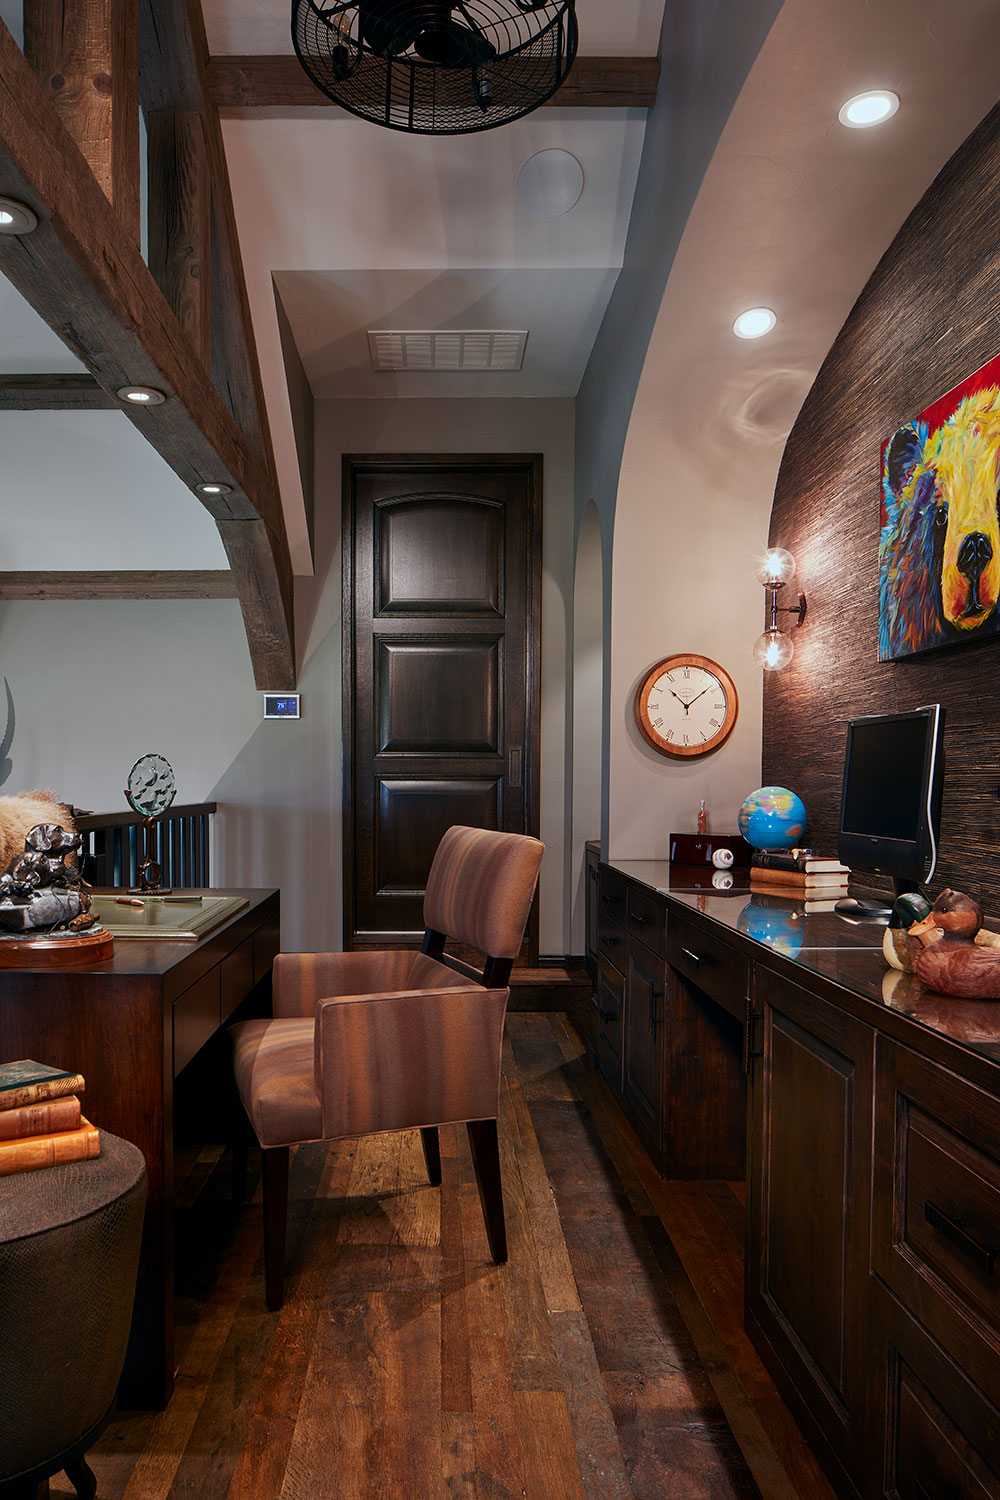 The husband's spacious study features a variety of wood tones and finishes.